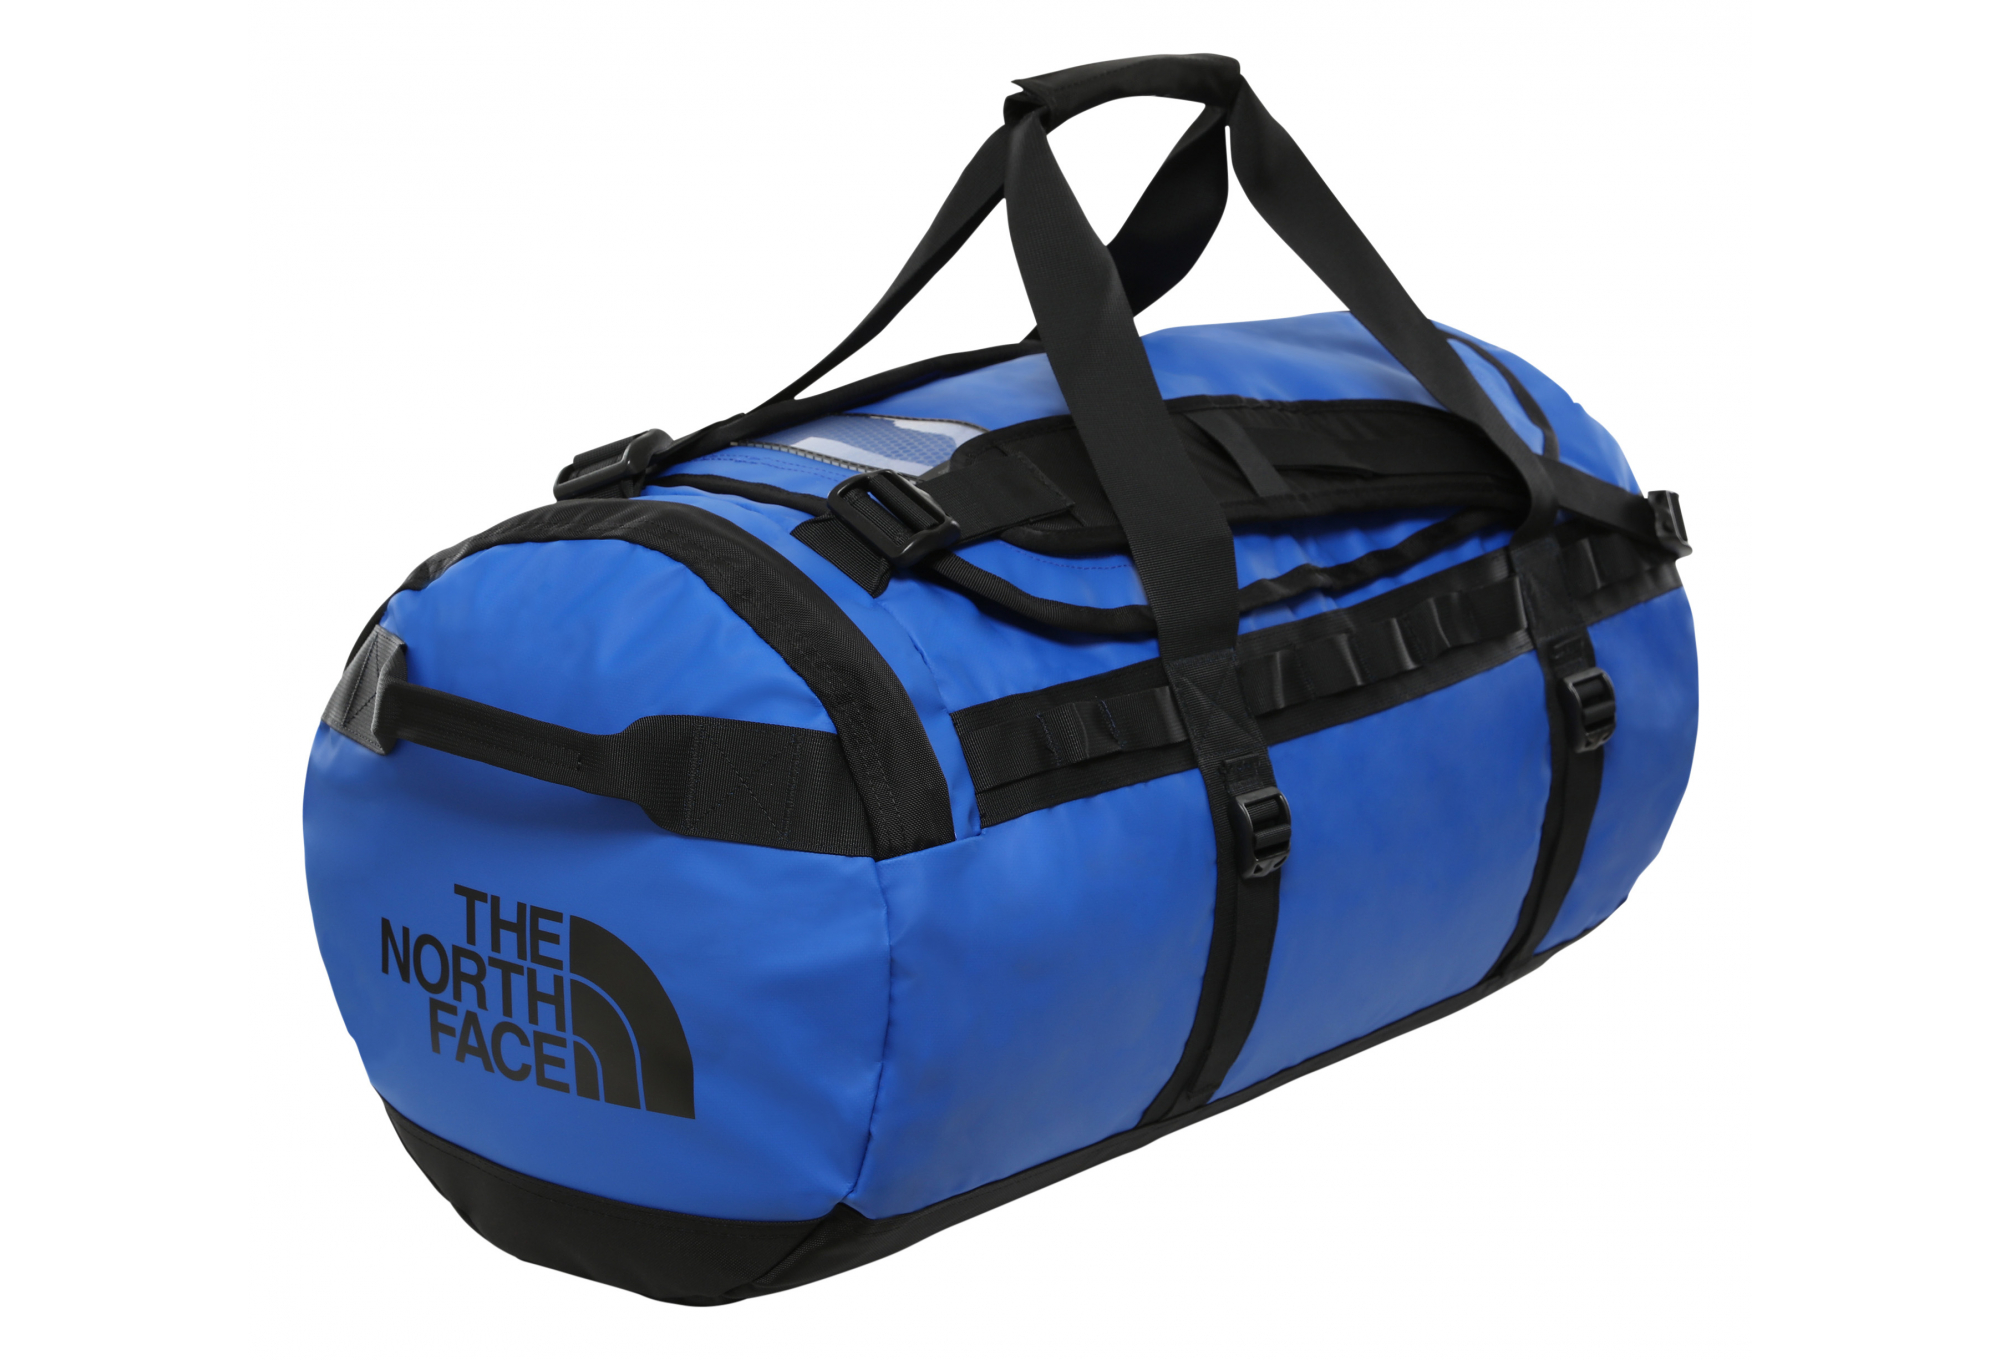 latest discount cheap prices outlet The North Face Base Camp Duffel - M Travel Bag Blue Black